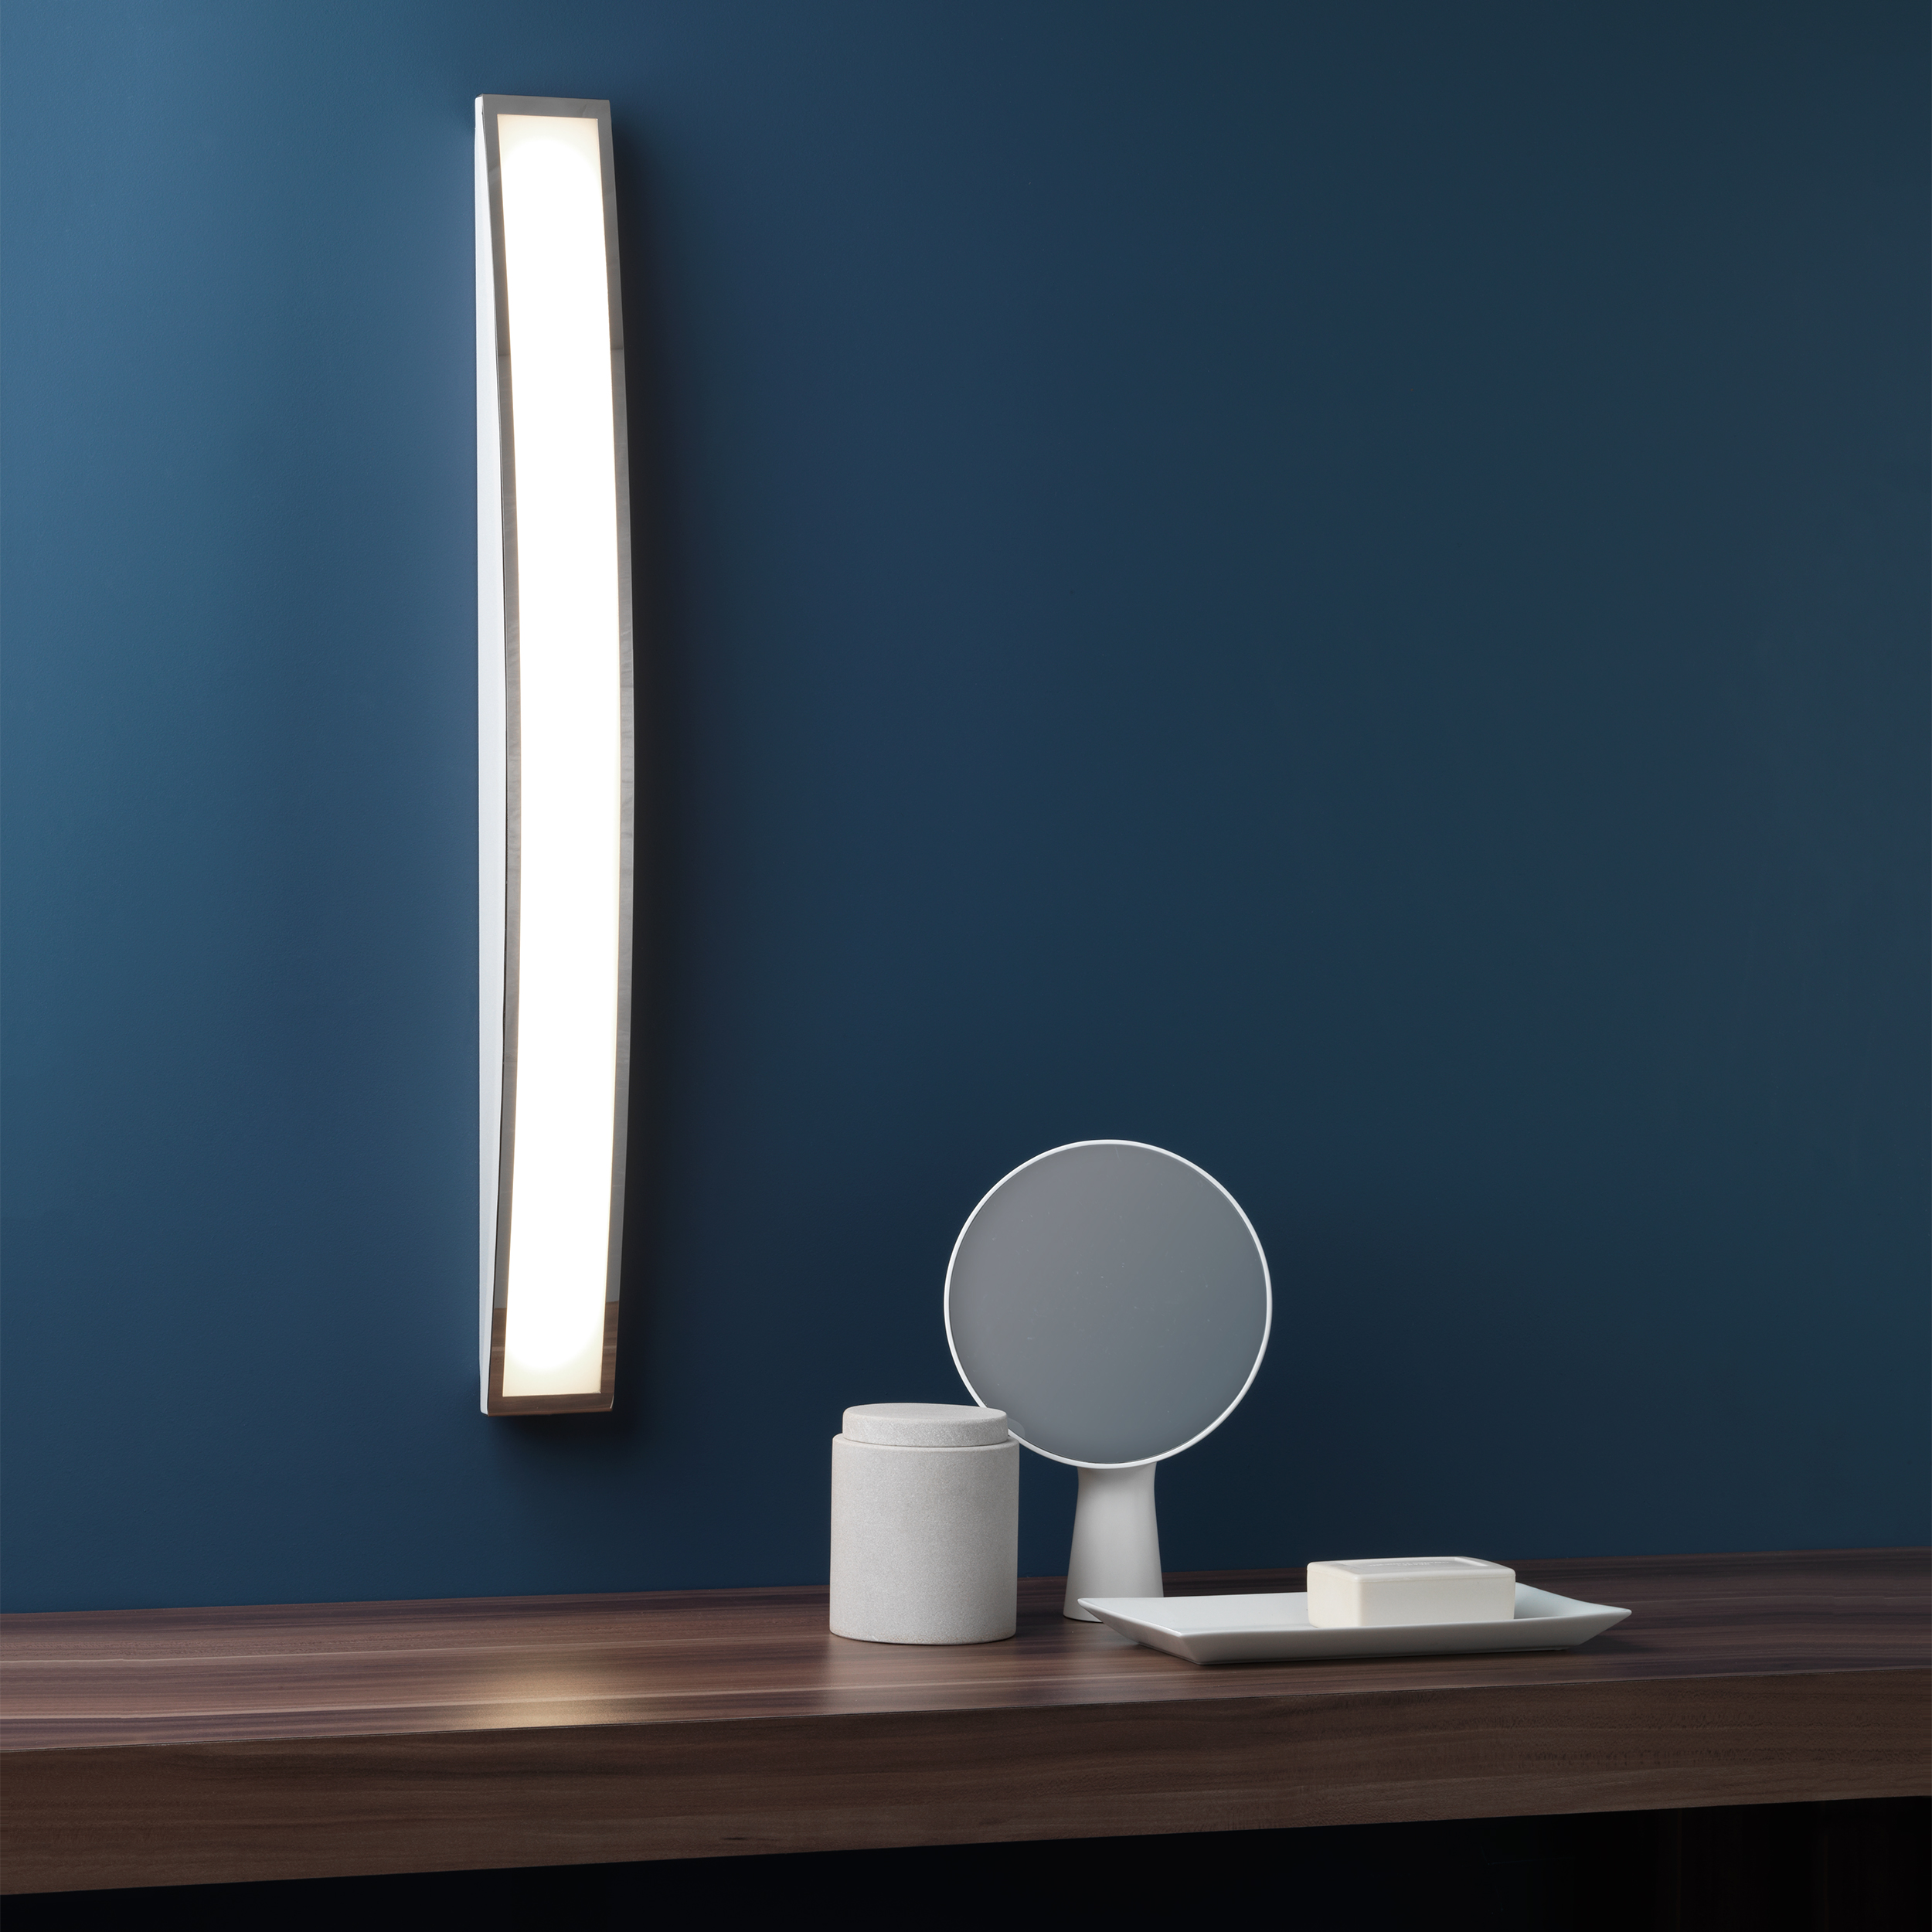 Astro Chord Bathroom Warm White Led Over Mirror Wall Light 7 2w Polished Chrome Liminaires